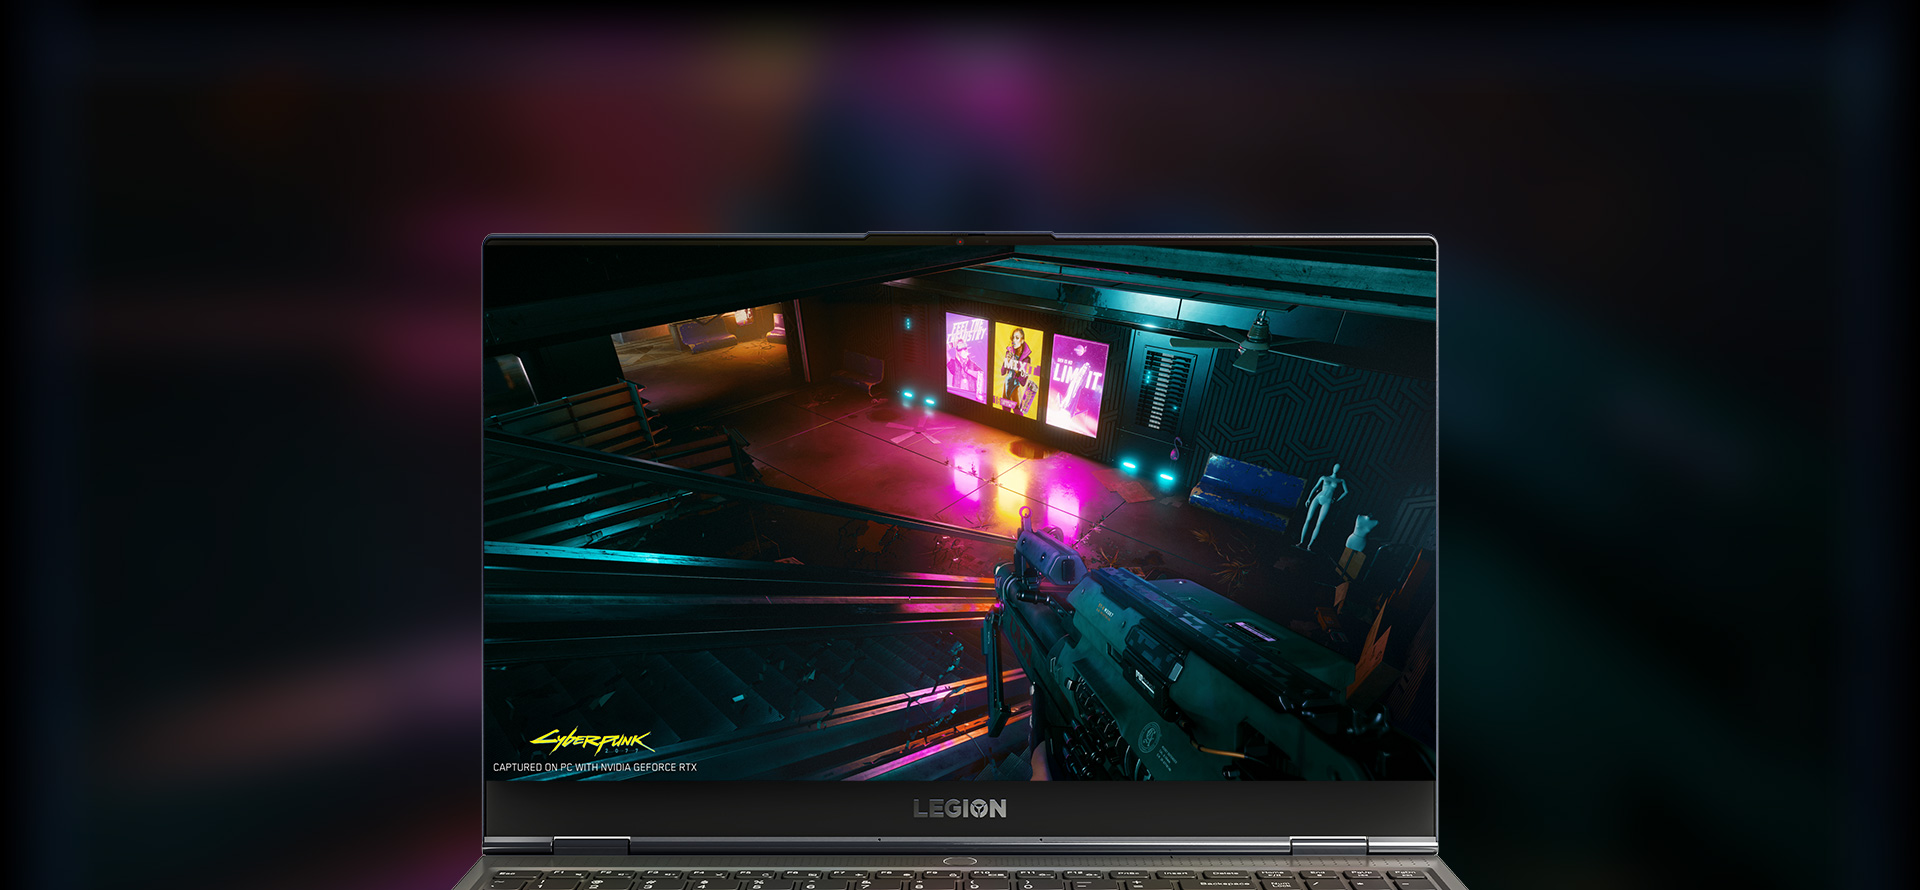 Front view of Lenovo Legion laptop screen with action game in the screenfill